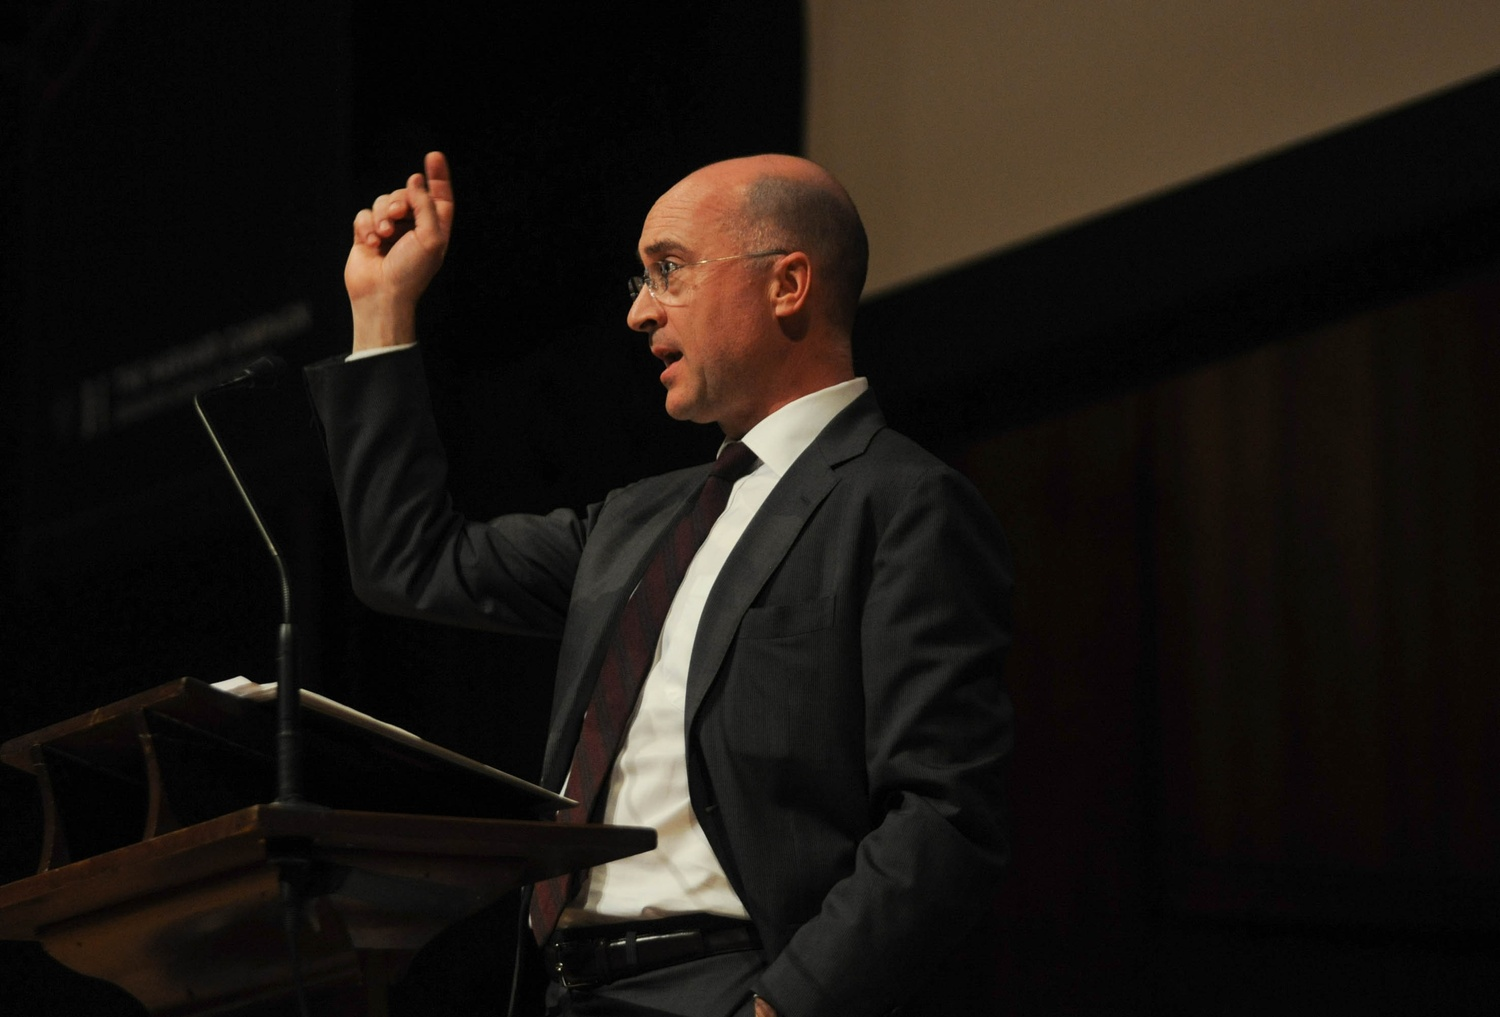 """Phil Harrison, president and CEO of global design firm Perkins+Will, speaks in Sanders Theatre alongside other affiliates of the Graduate School of Design. The speech kicked off the weekend """"Grounded Visionaries"""" event, as well as the campaign for the GSD."""